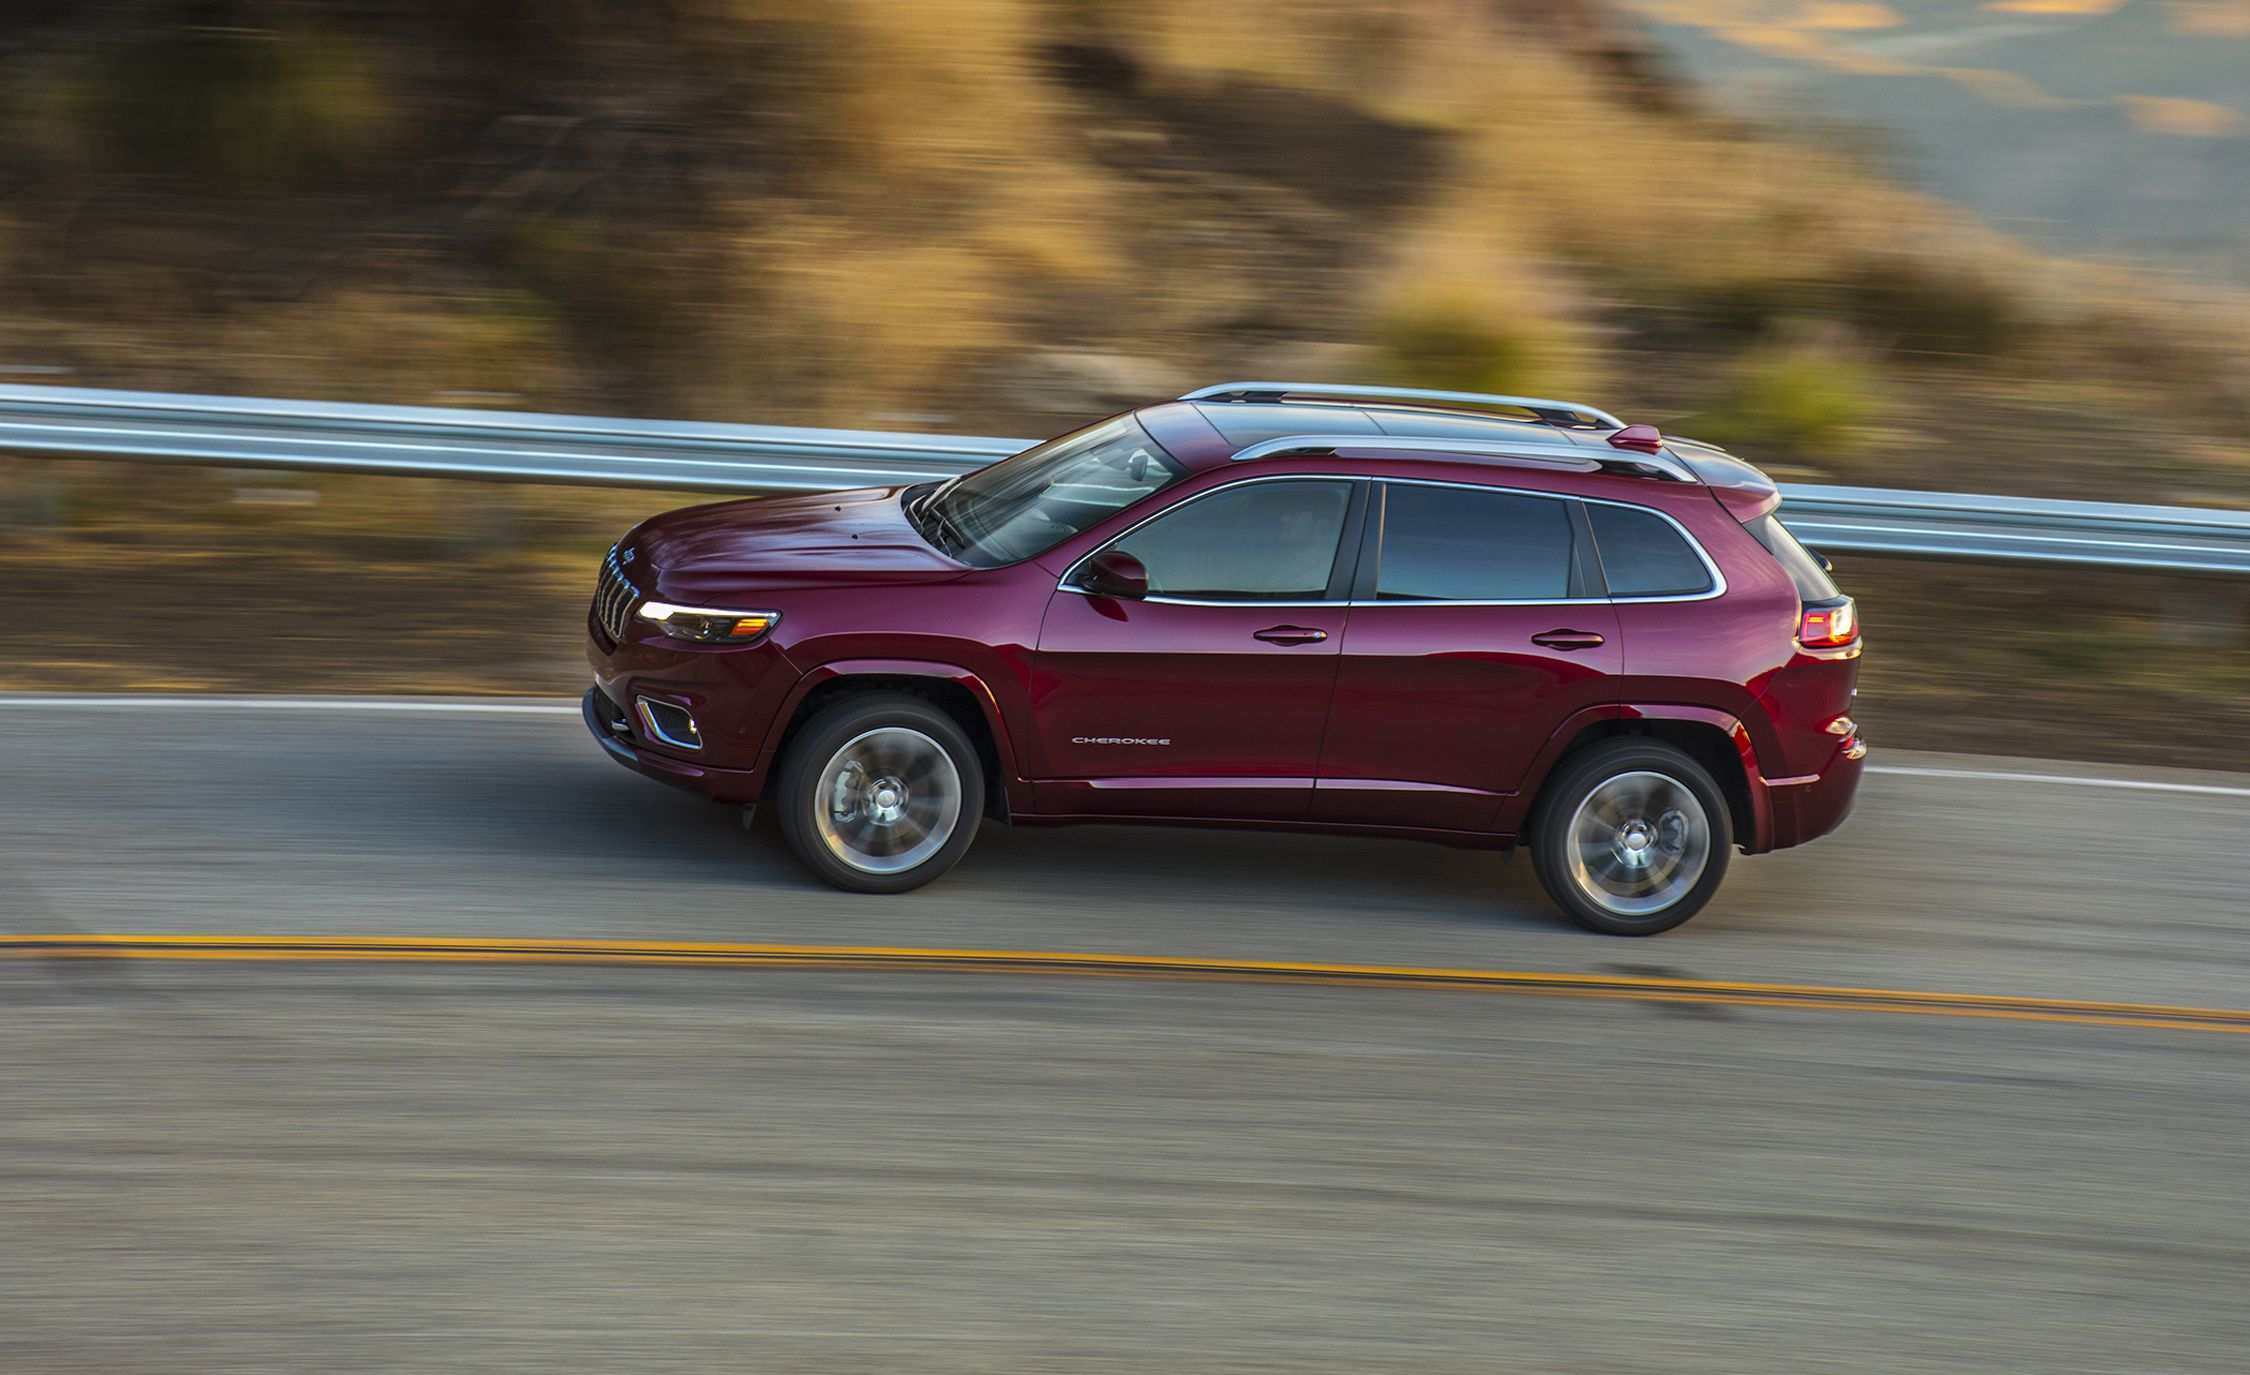 34 Concept of The Grand Cherokee Jeep 2019 Exterior And Interior Review First Drive with The Grand Cherokee Jeep 2019 Exterior And Interior Review